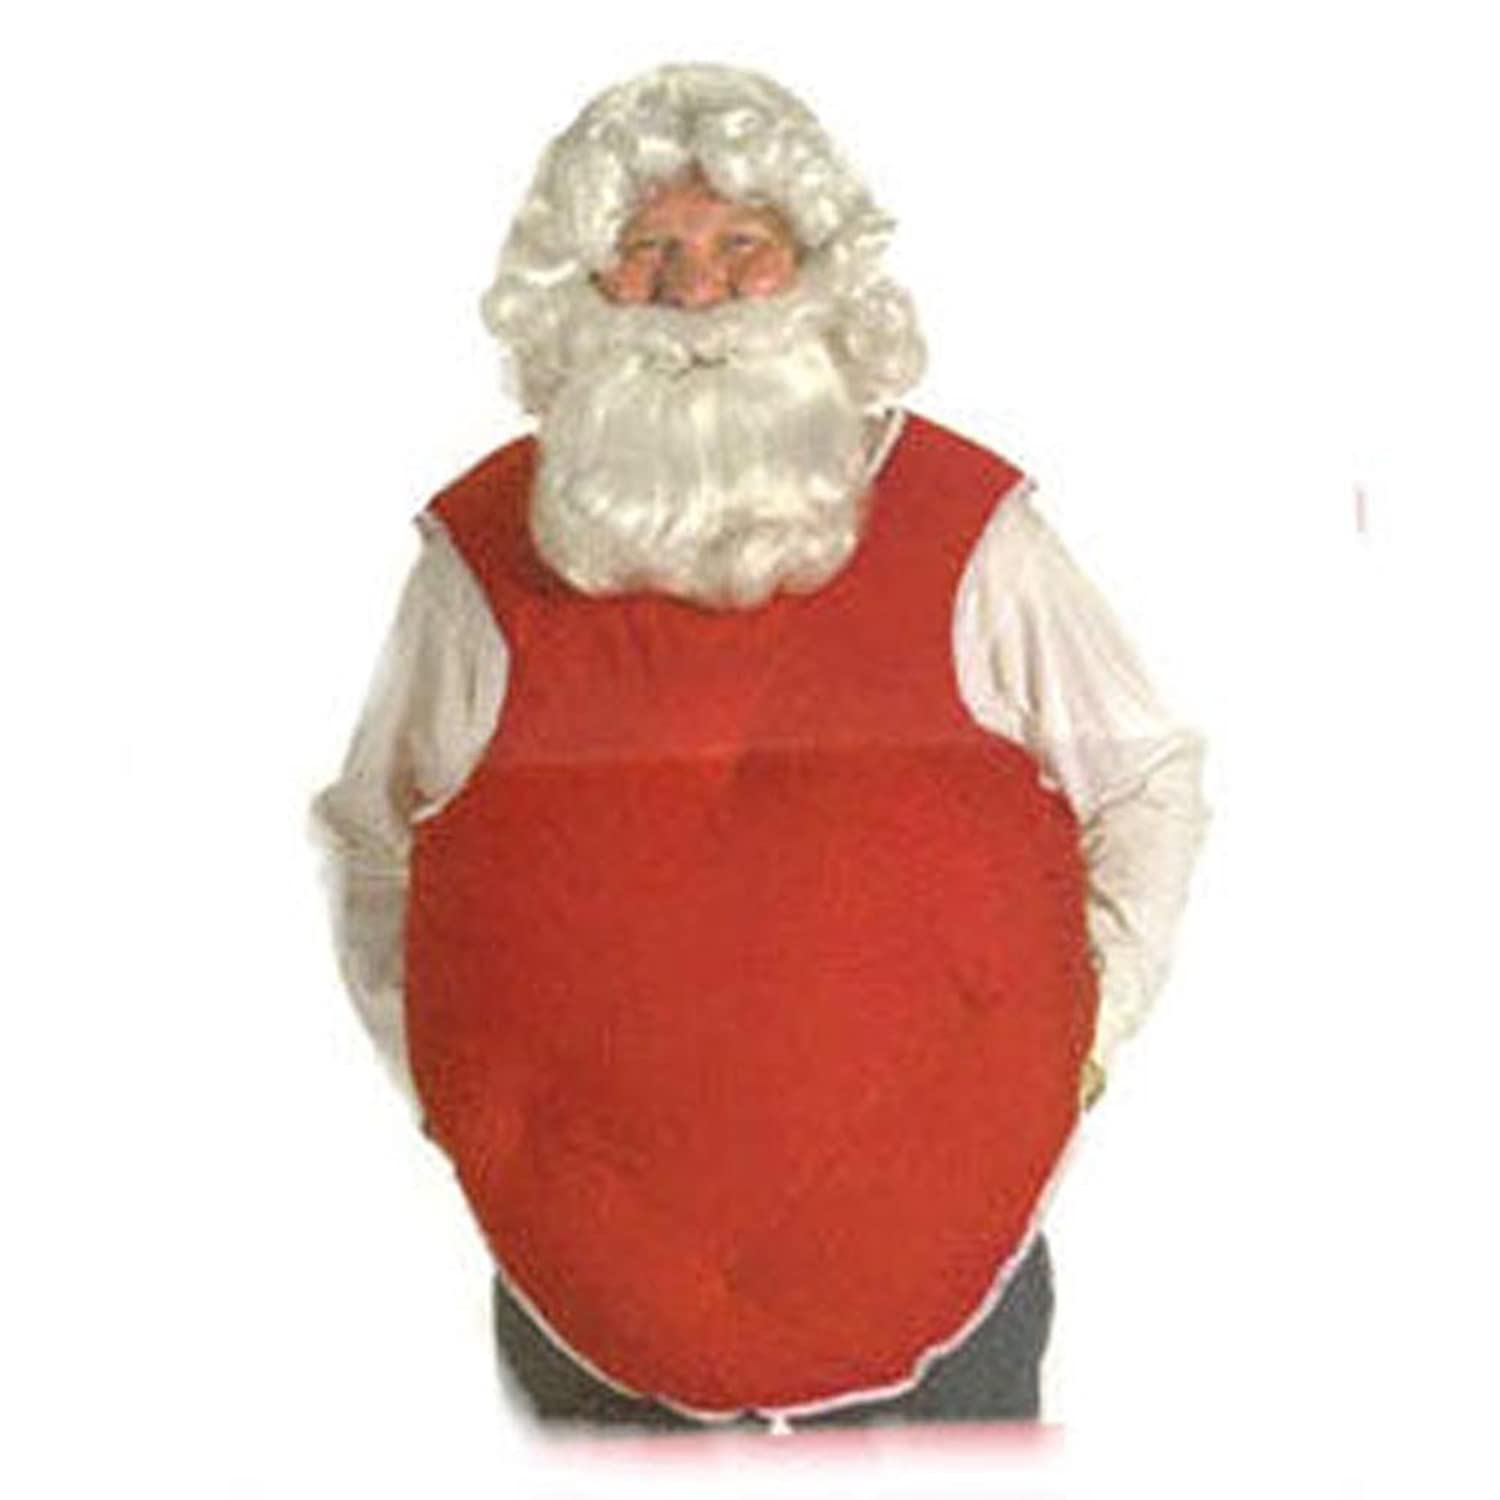 Men's Red Santa Suit Stuffer Tummy Pad - DeluxeAdultCostumes.com